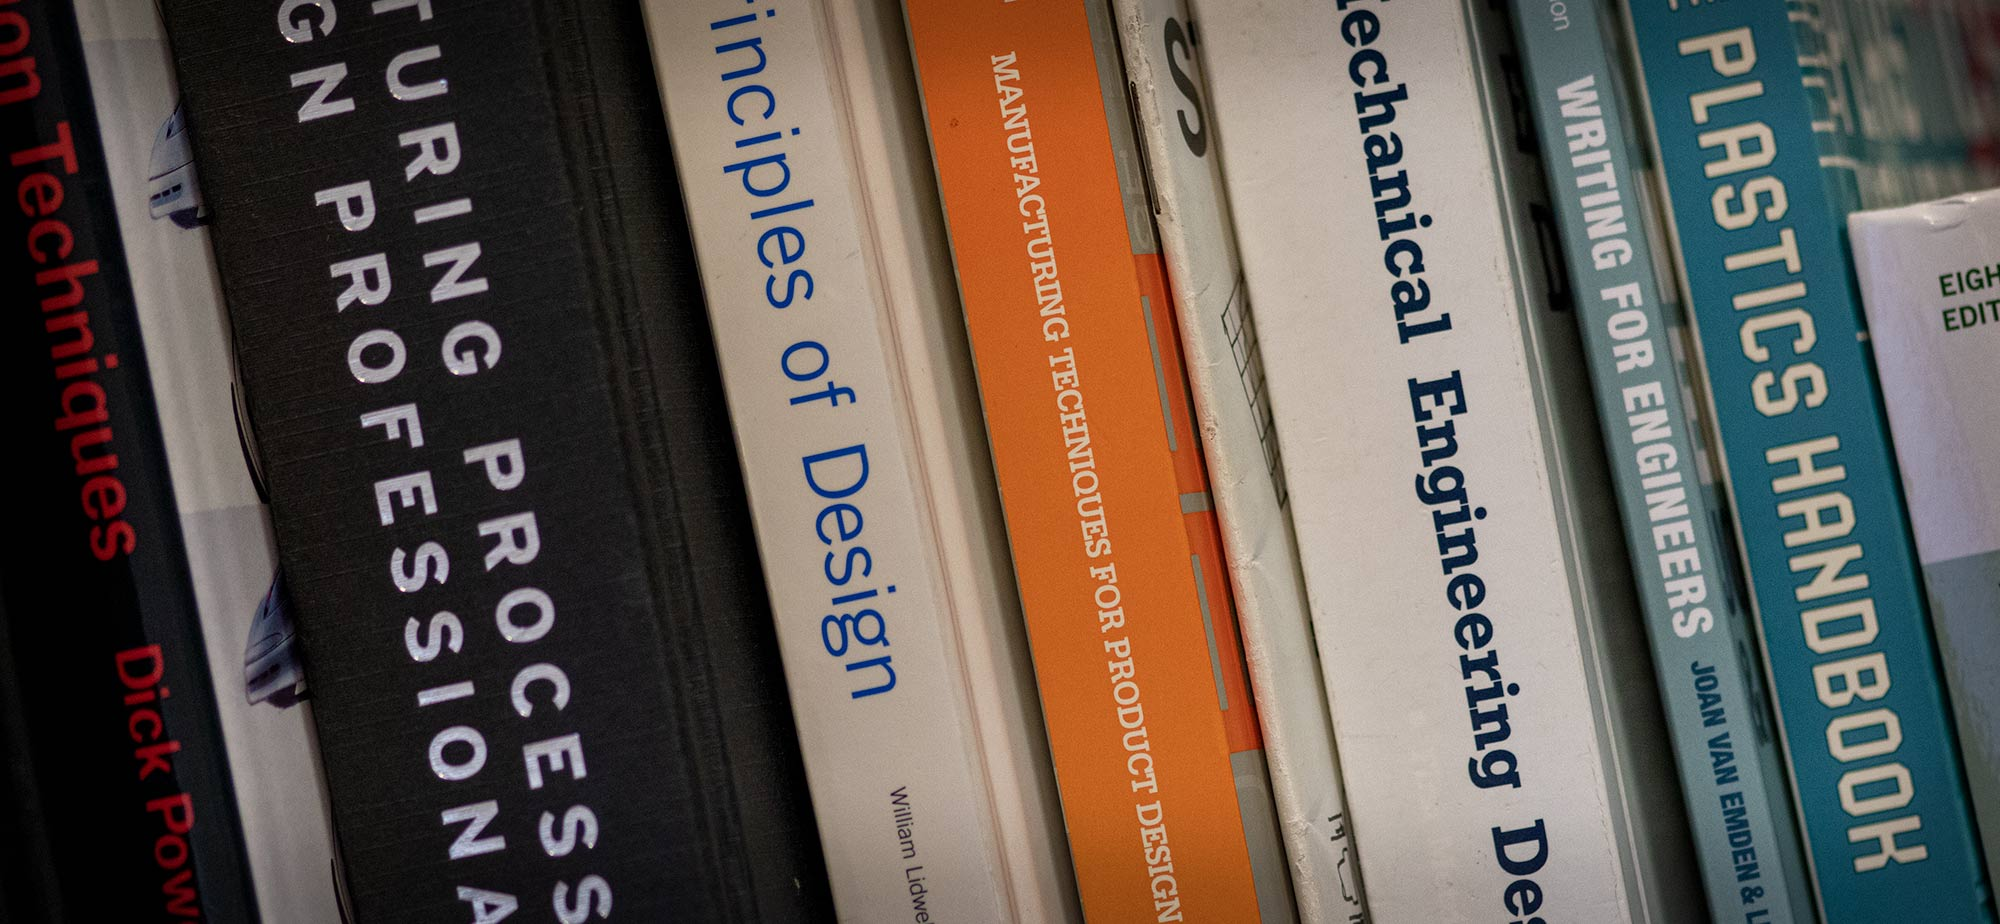 The best engineering and product design books